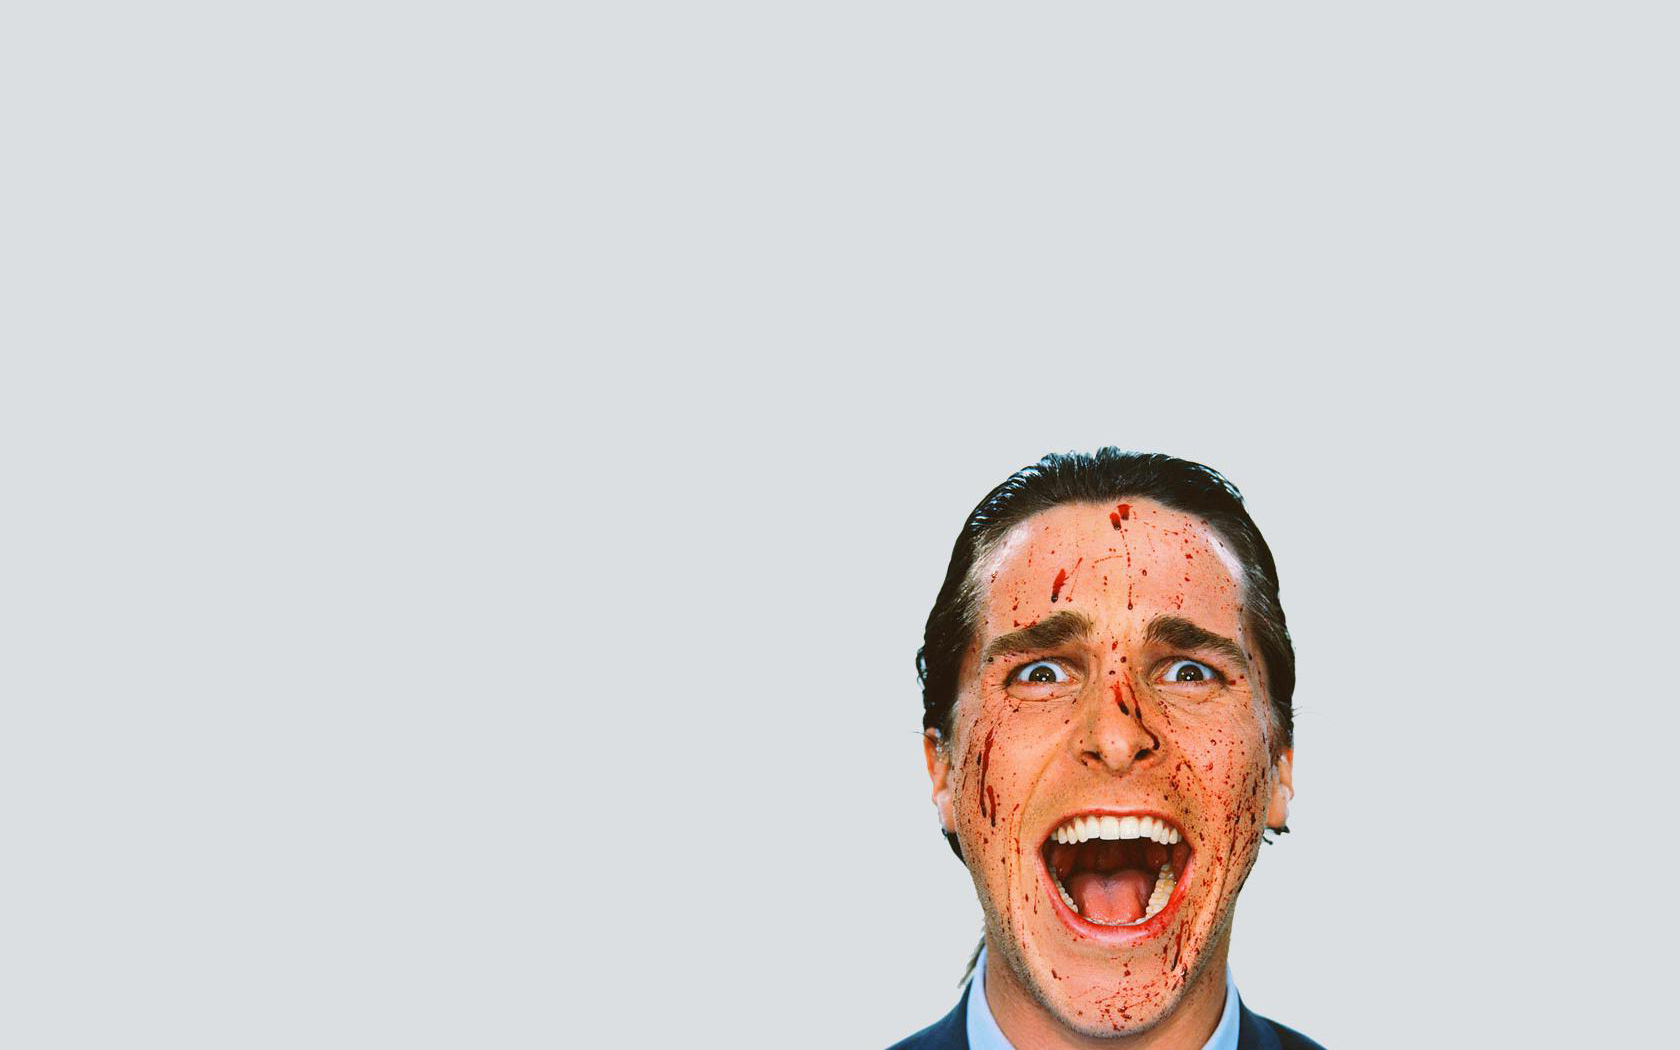 15 American Psycho HD Wallpapers | Backgrounds - Wallpaper ...